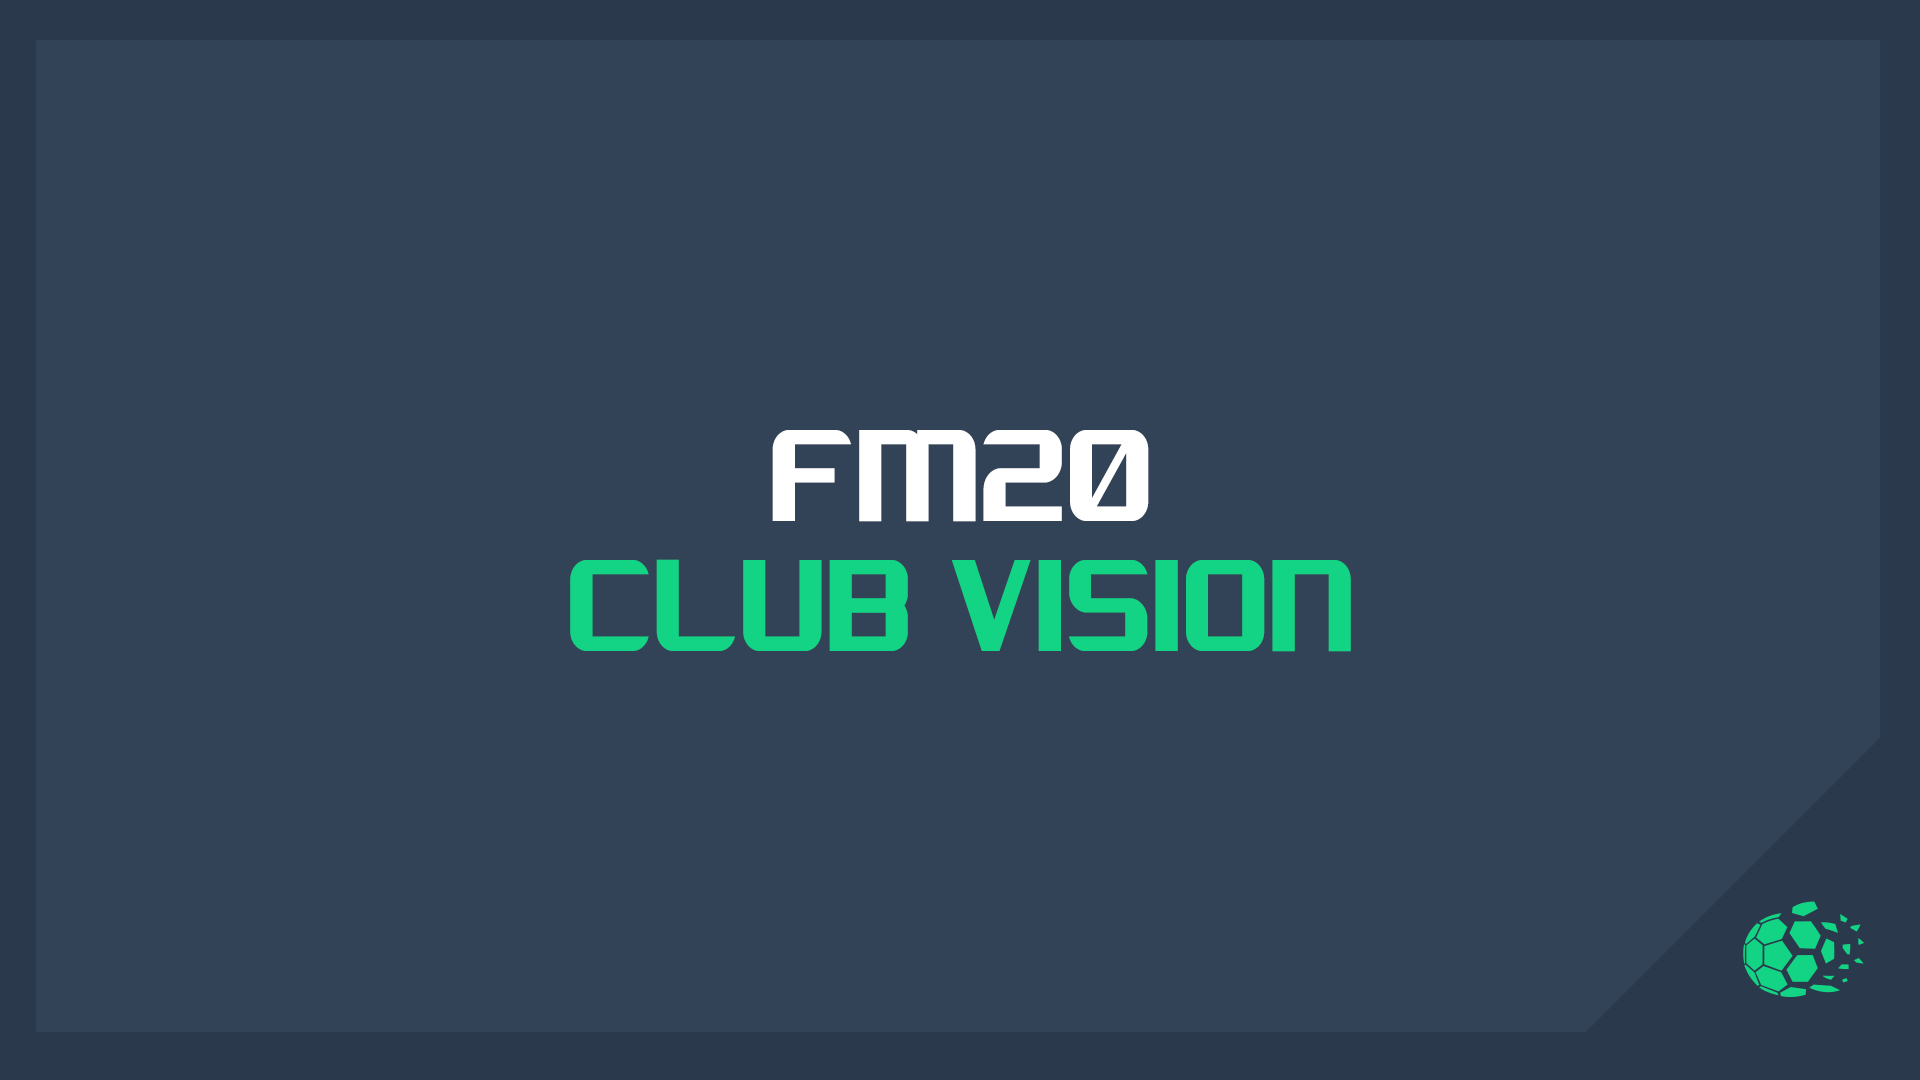 """FM20 Headline Features: Club Vision"" feature image"